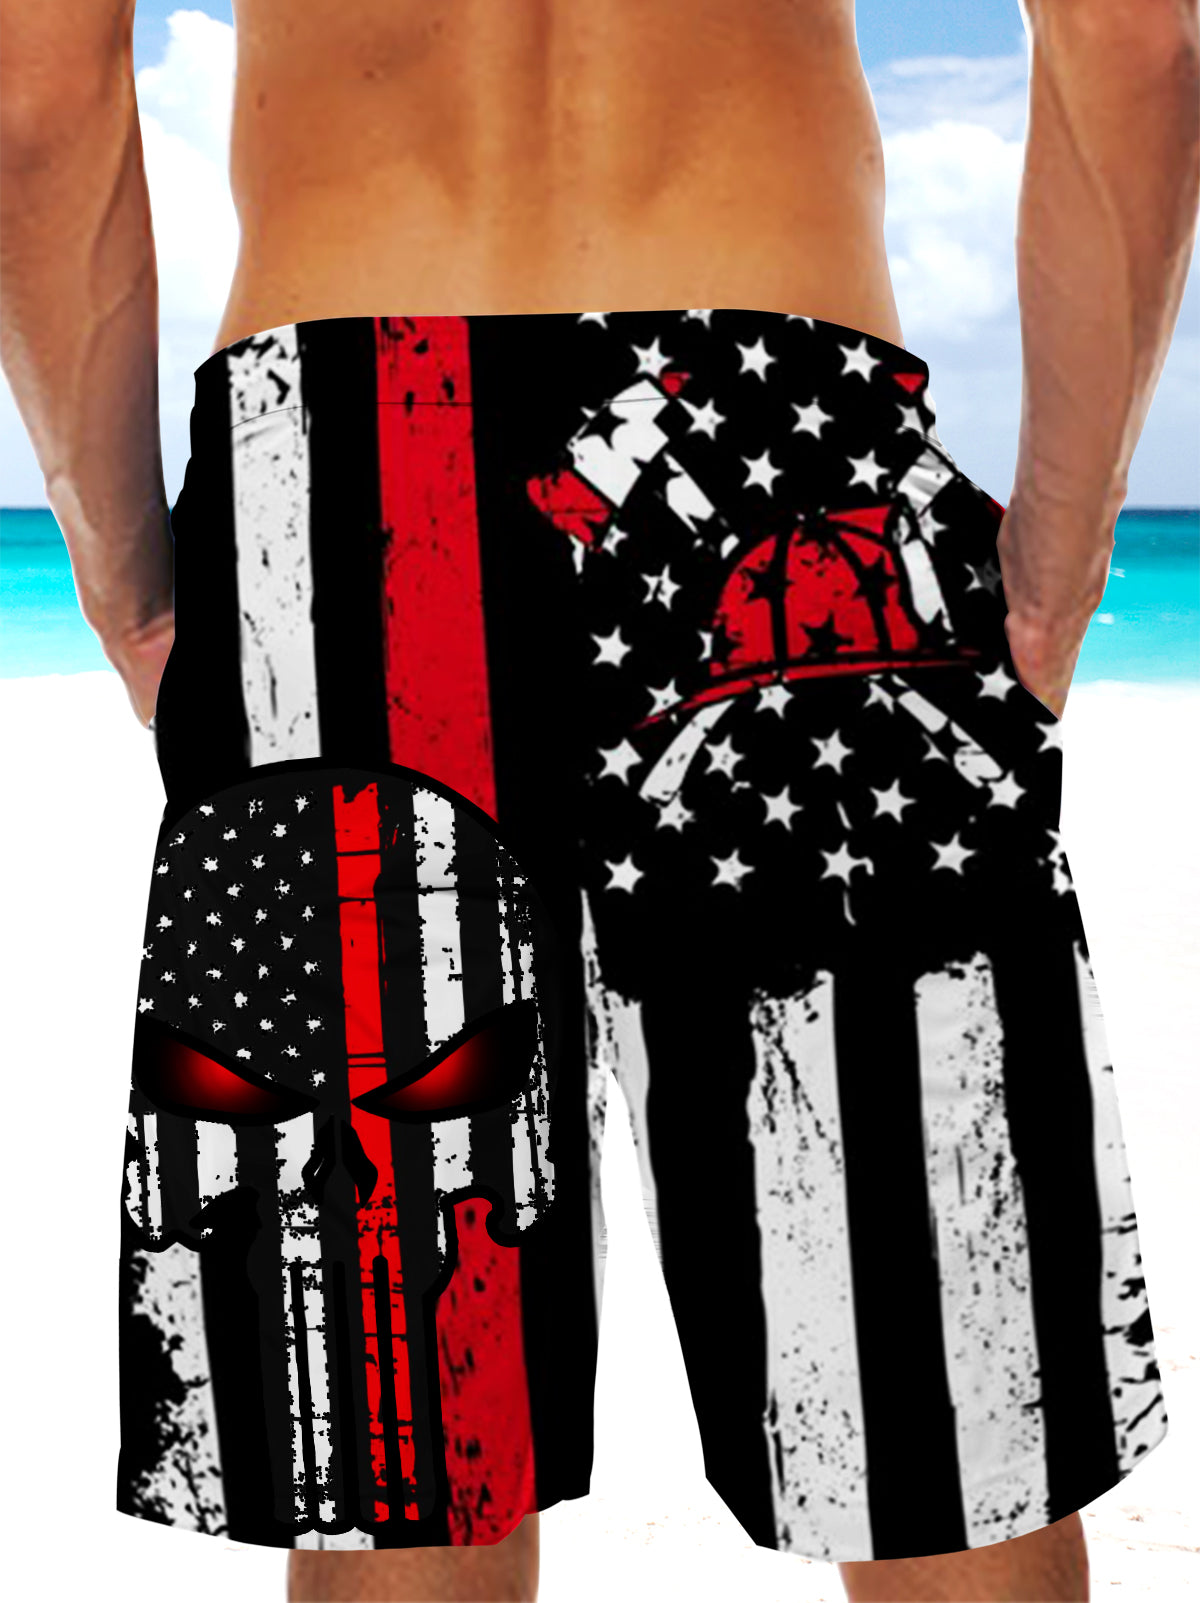 Ultra-light Drawstring Shorts for Men - FIRE DEPT. Firefighter 005 - designfullprint